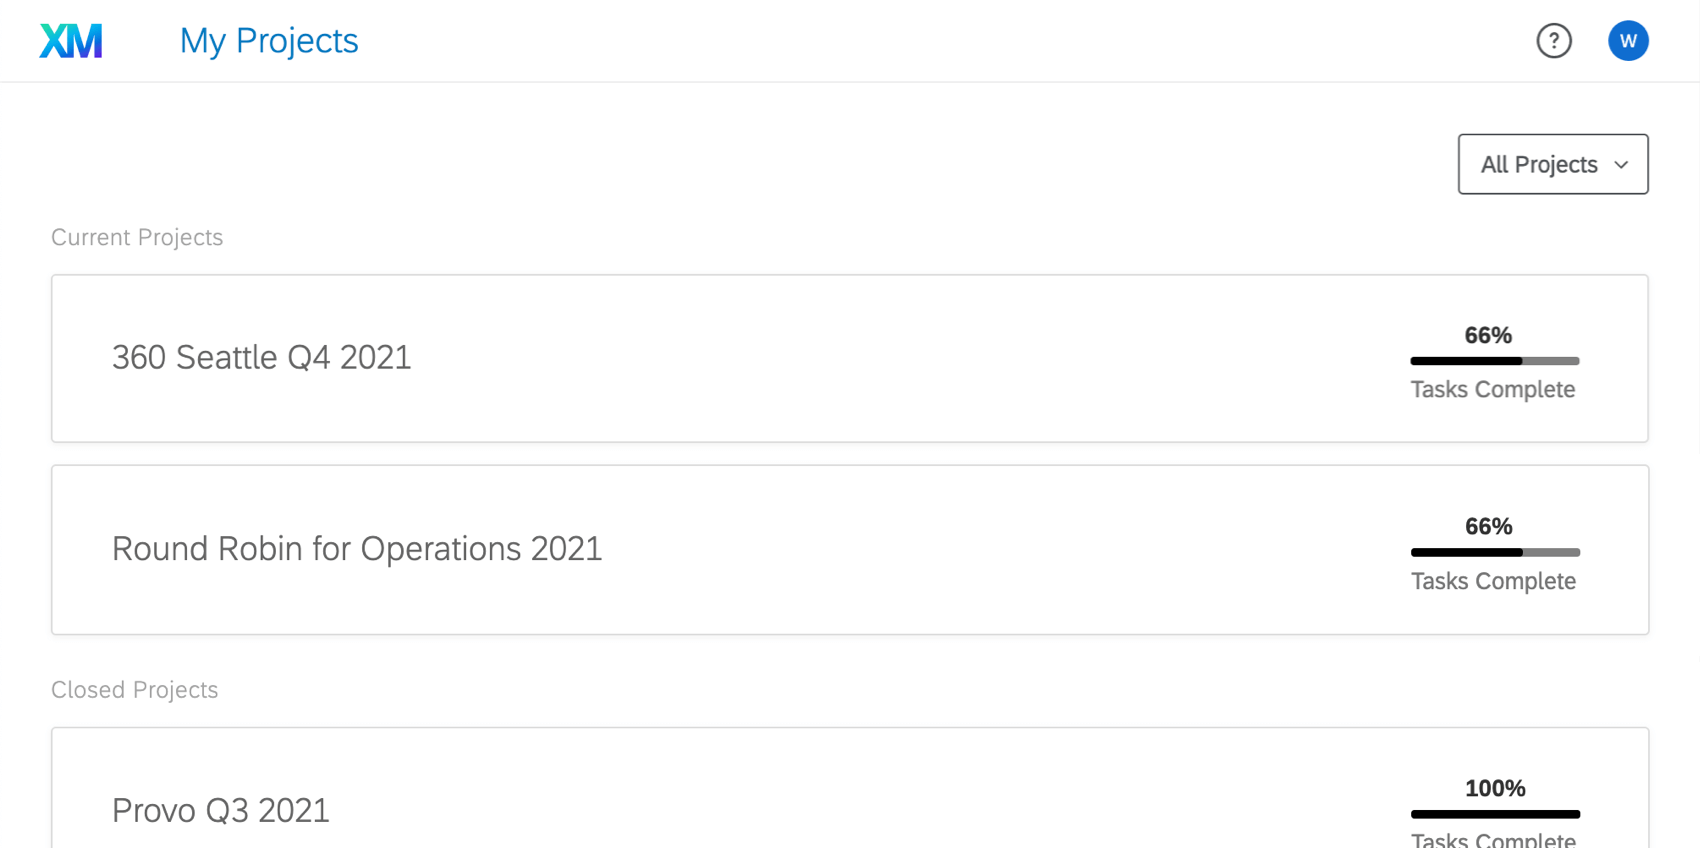 My Projects page in the Participant Portal showing a list of projects